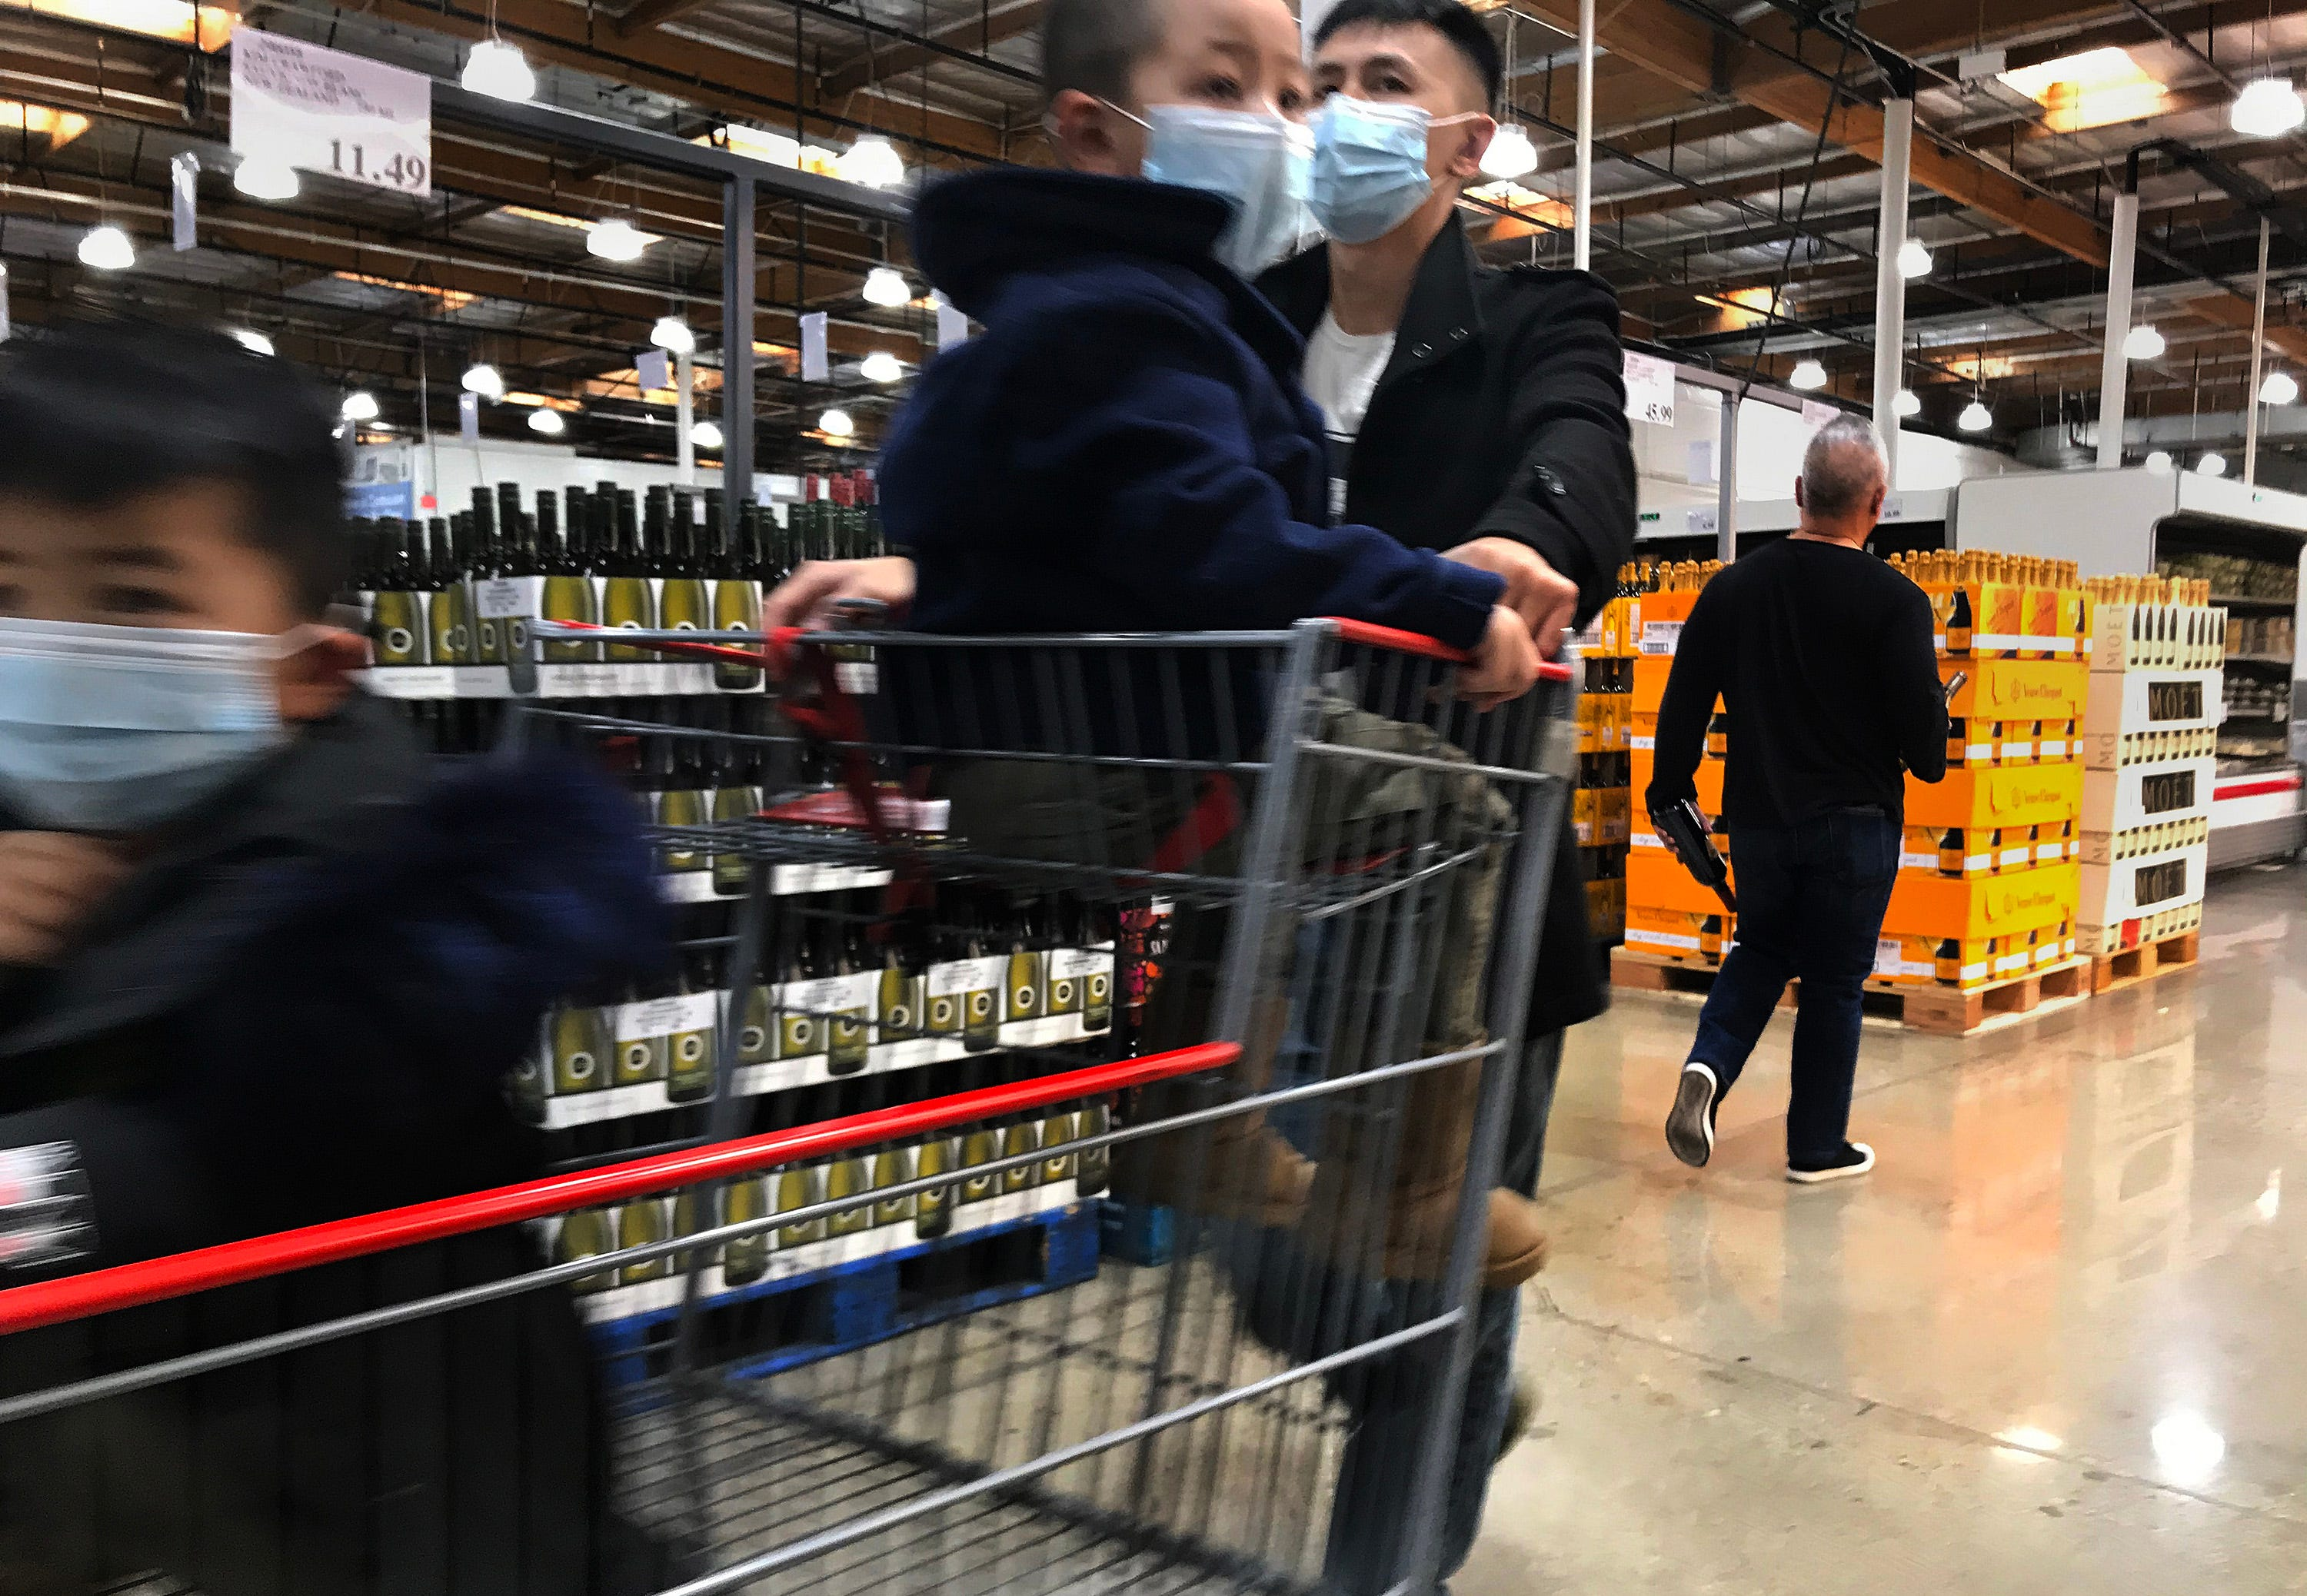 A shopper with his young children all wear masks to protect against coronavirus while shopping at Costco on March 7, 2020 in Alhambra, Calif.